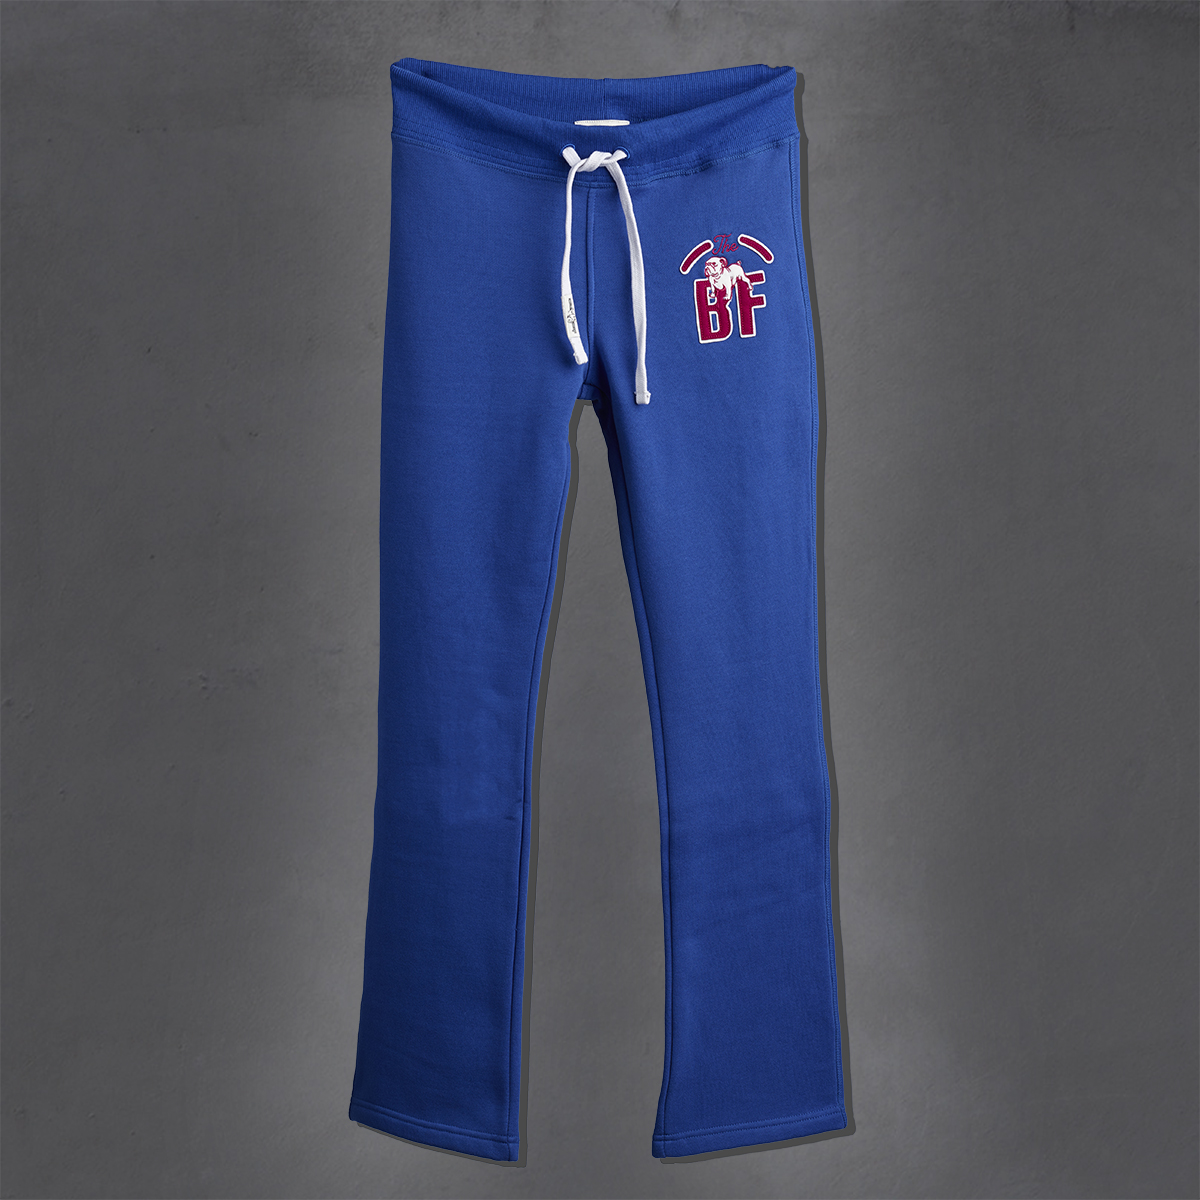 Girls Heritage Sweatpants - Dazzling Blue